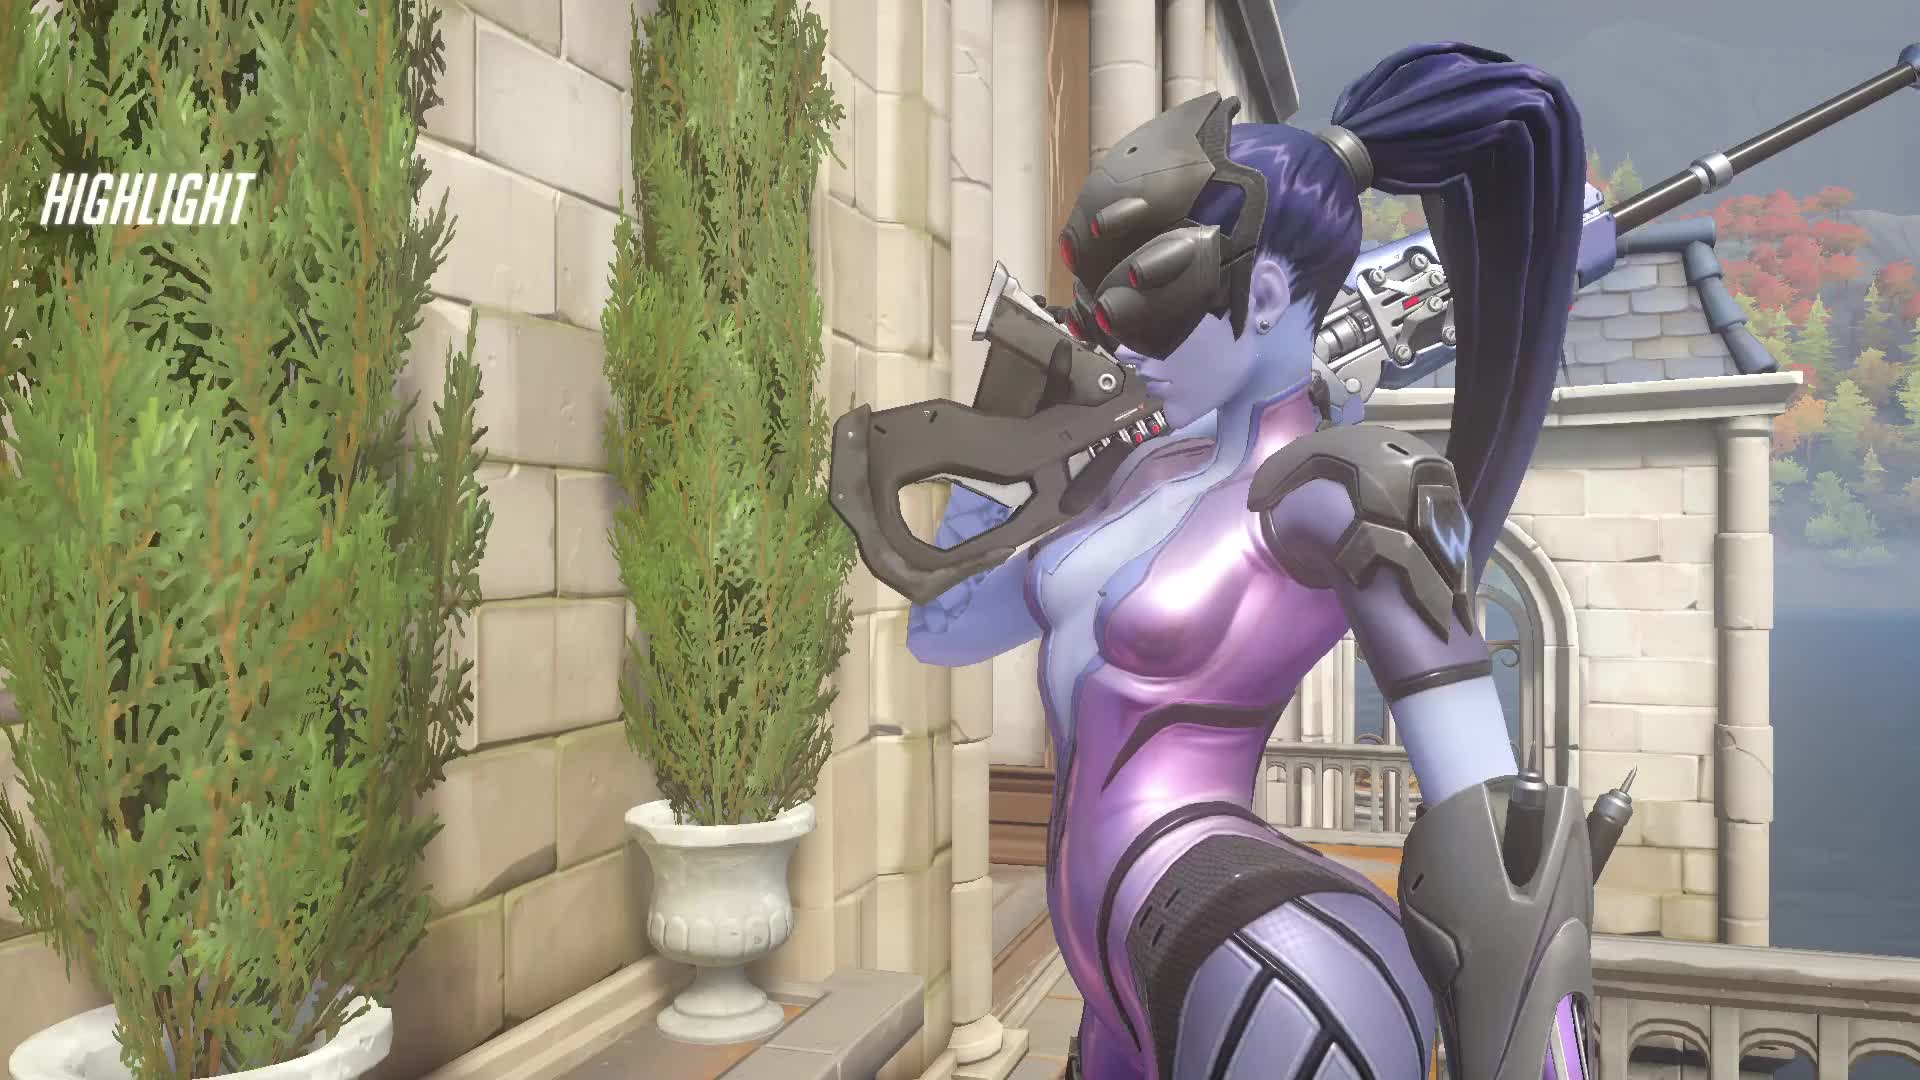 highlight, overwatch, Meh double dink GIFs